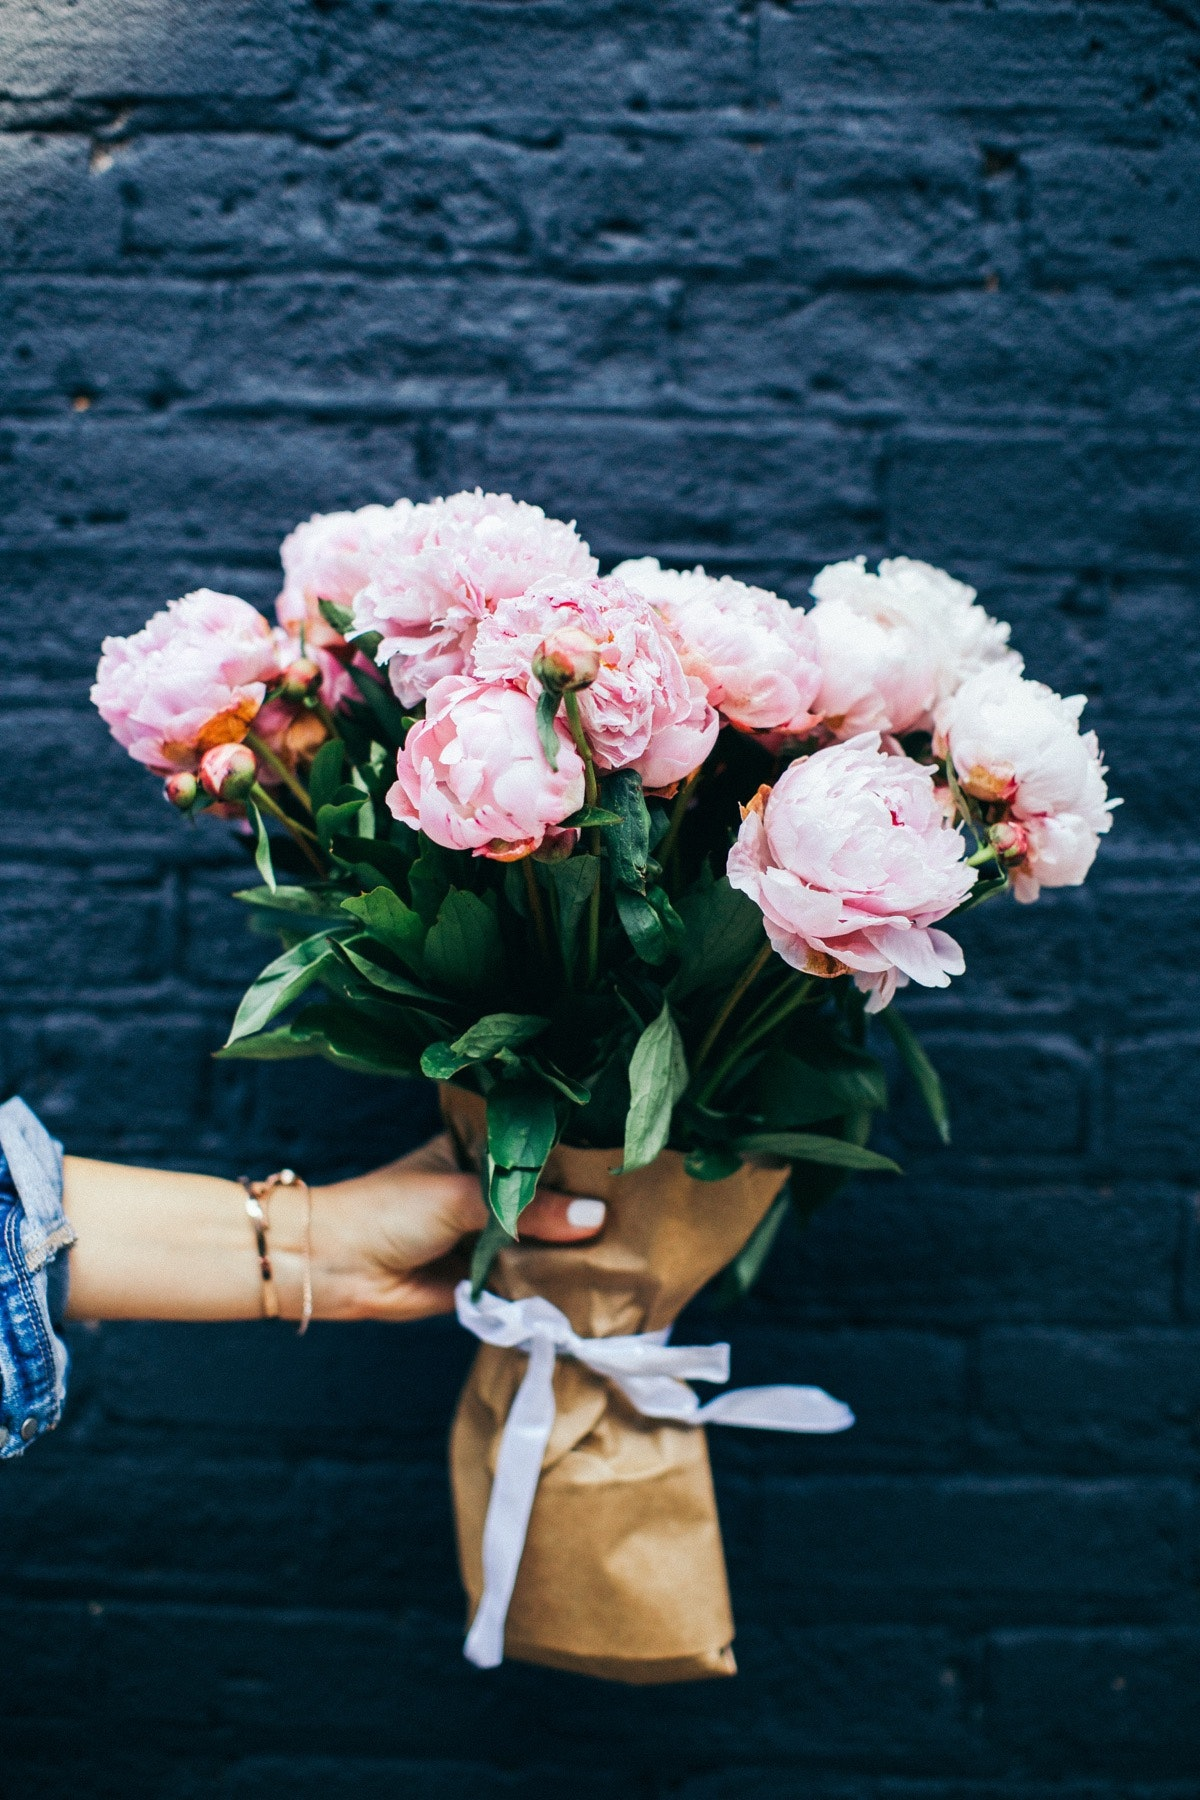 1000 beautiful bouquet of flowers photos pexels free stock photos bouquet of flowers photos izmirmasajfo